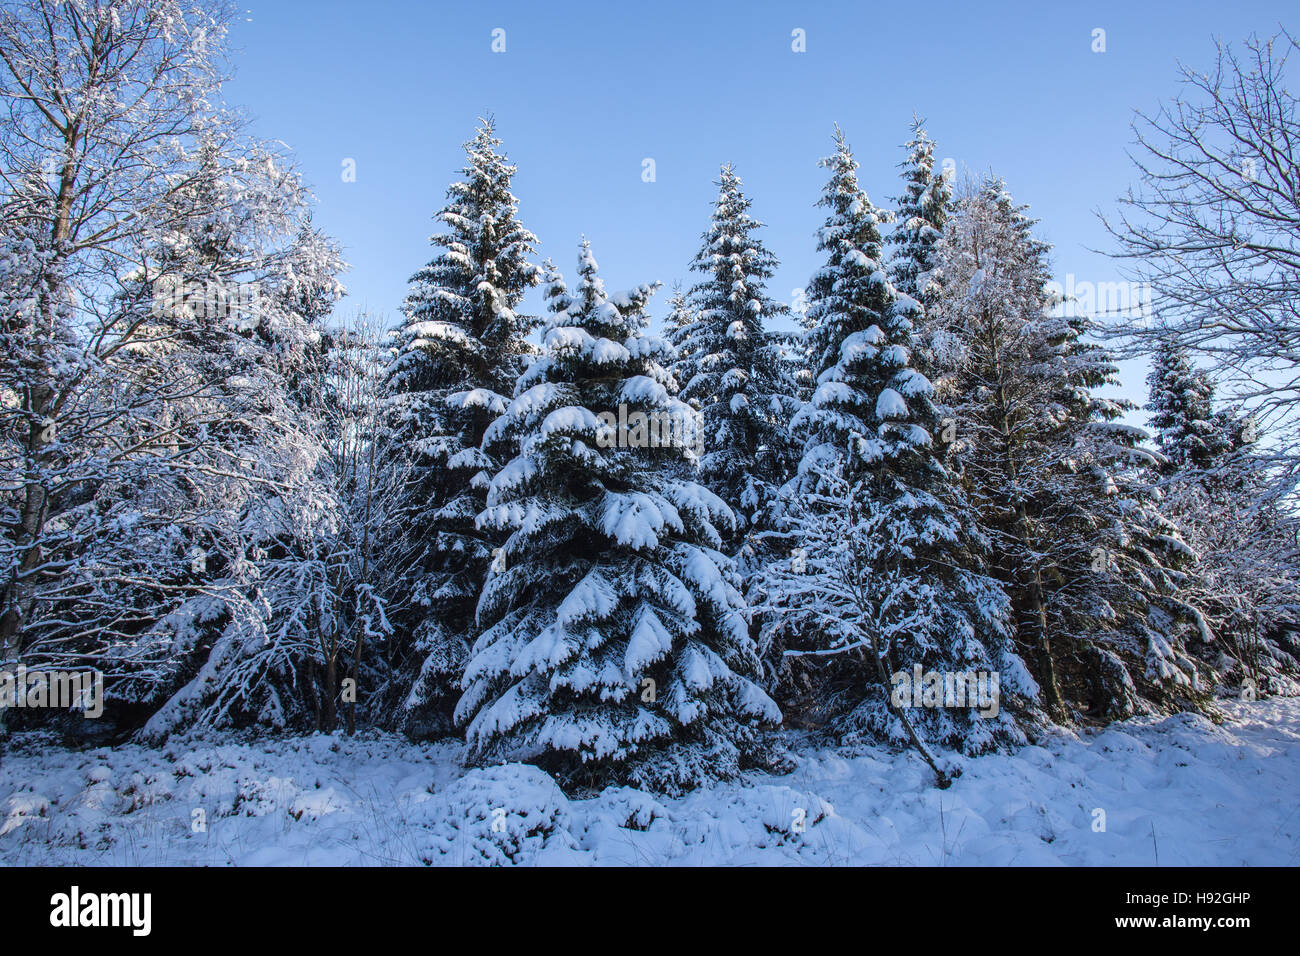 Conifer trees with snow in winter forest - Stock Image